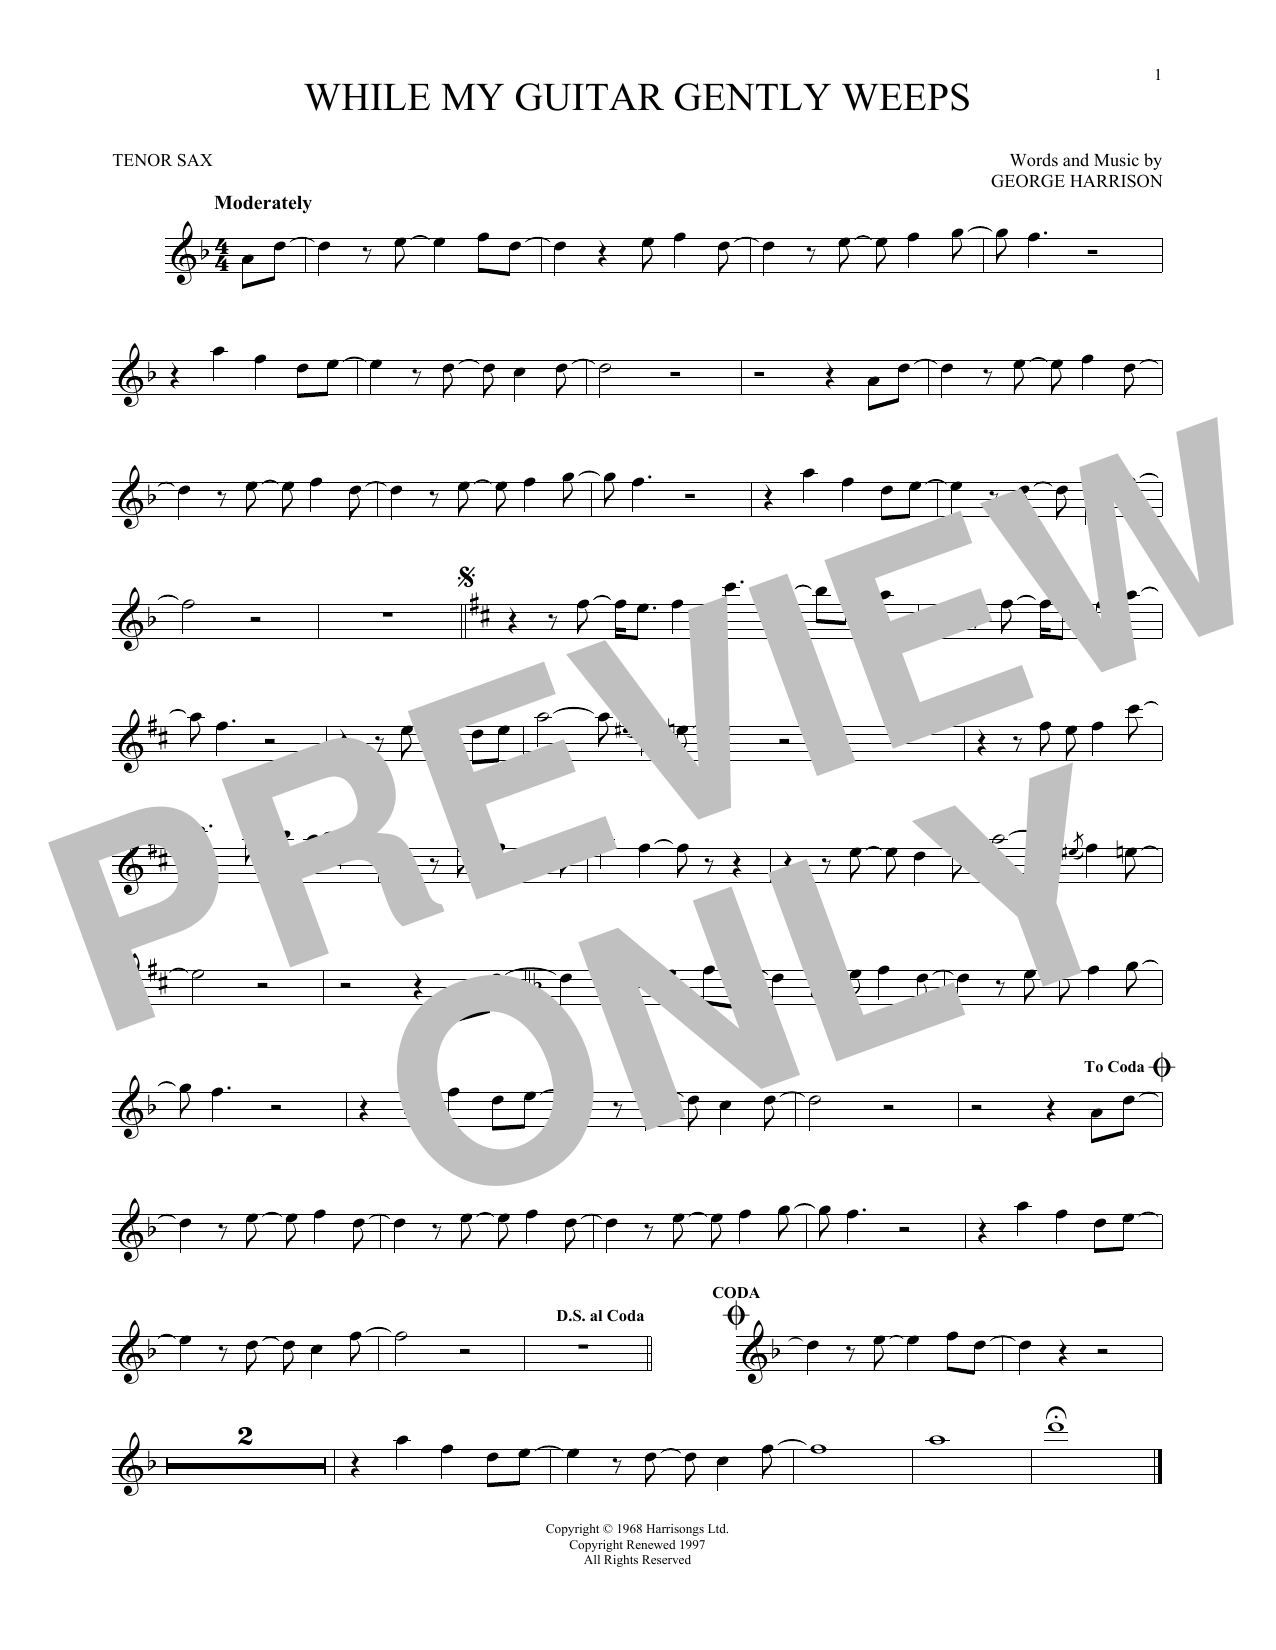 While My Guitar Gently Weeps Sheet Music